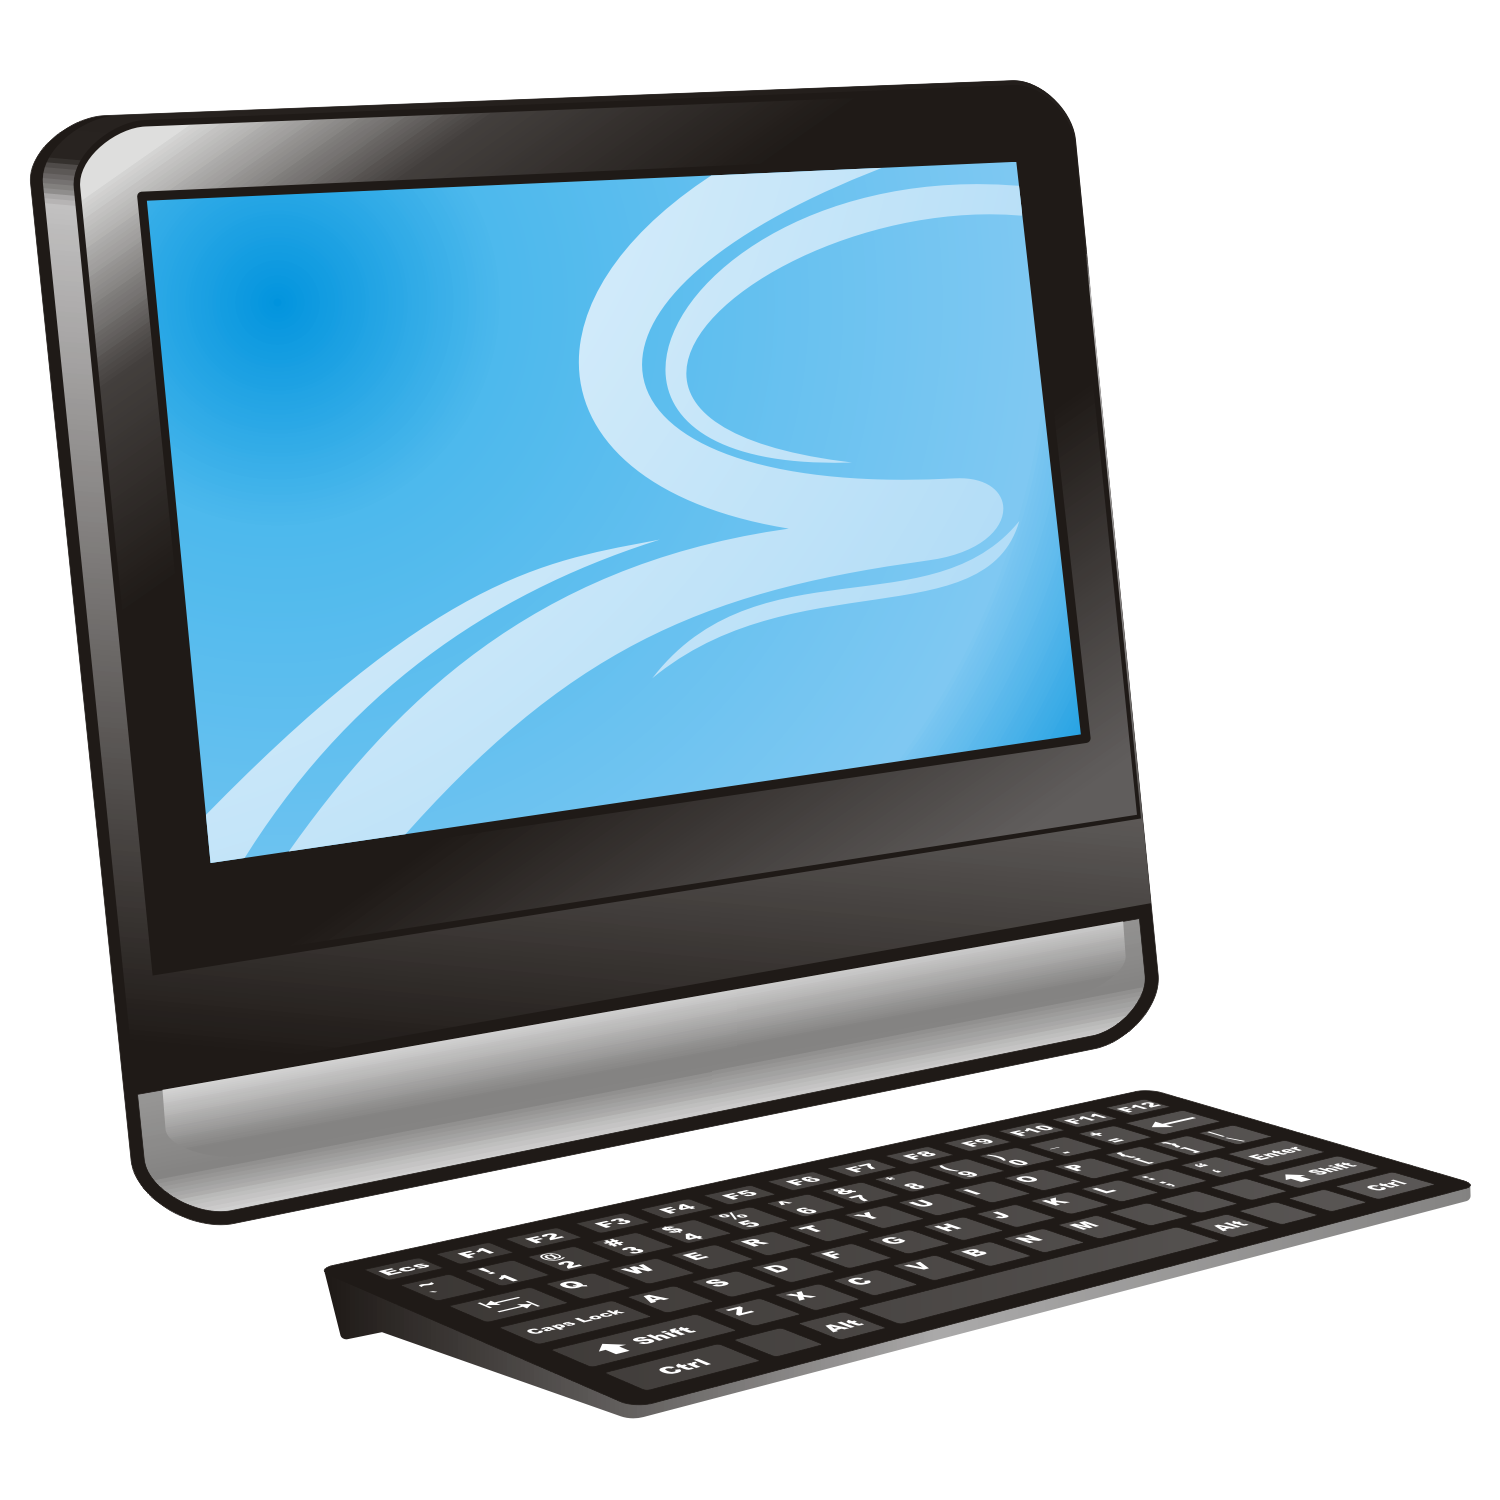 8 Computer Icon Vector Images